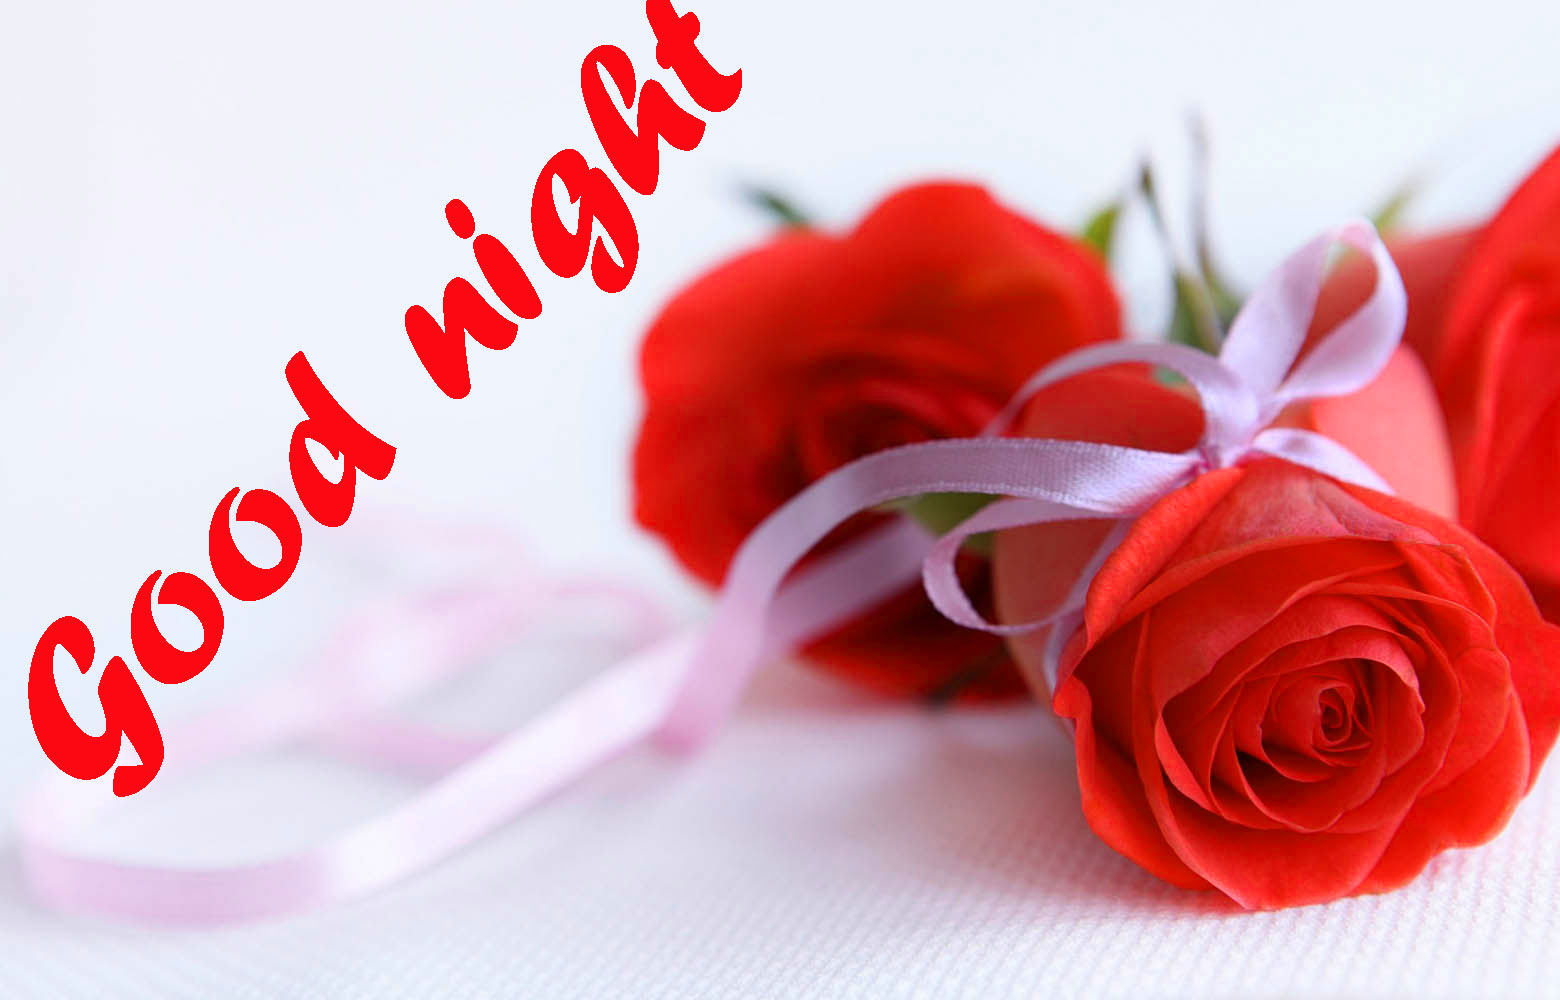 RED ROSE GOOD NIGHT WISHES IMAGES WALLPAPER PICS HD DOWNLOAD